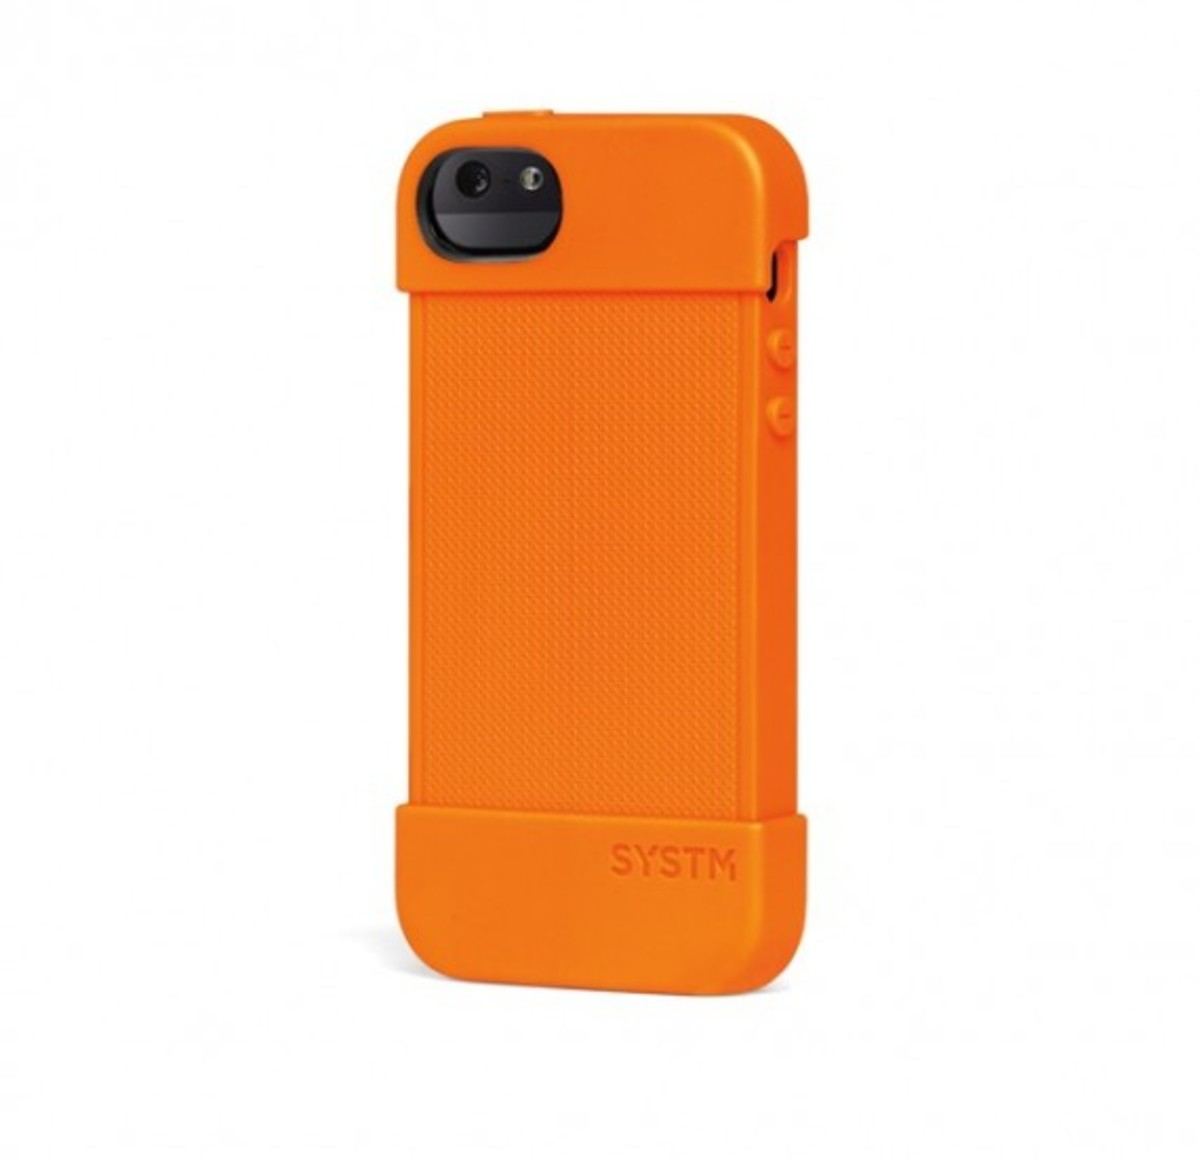 systm-iphone-5-cases-08